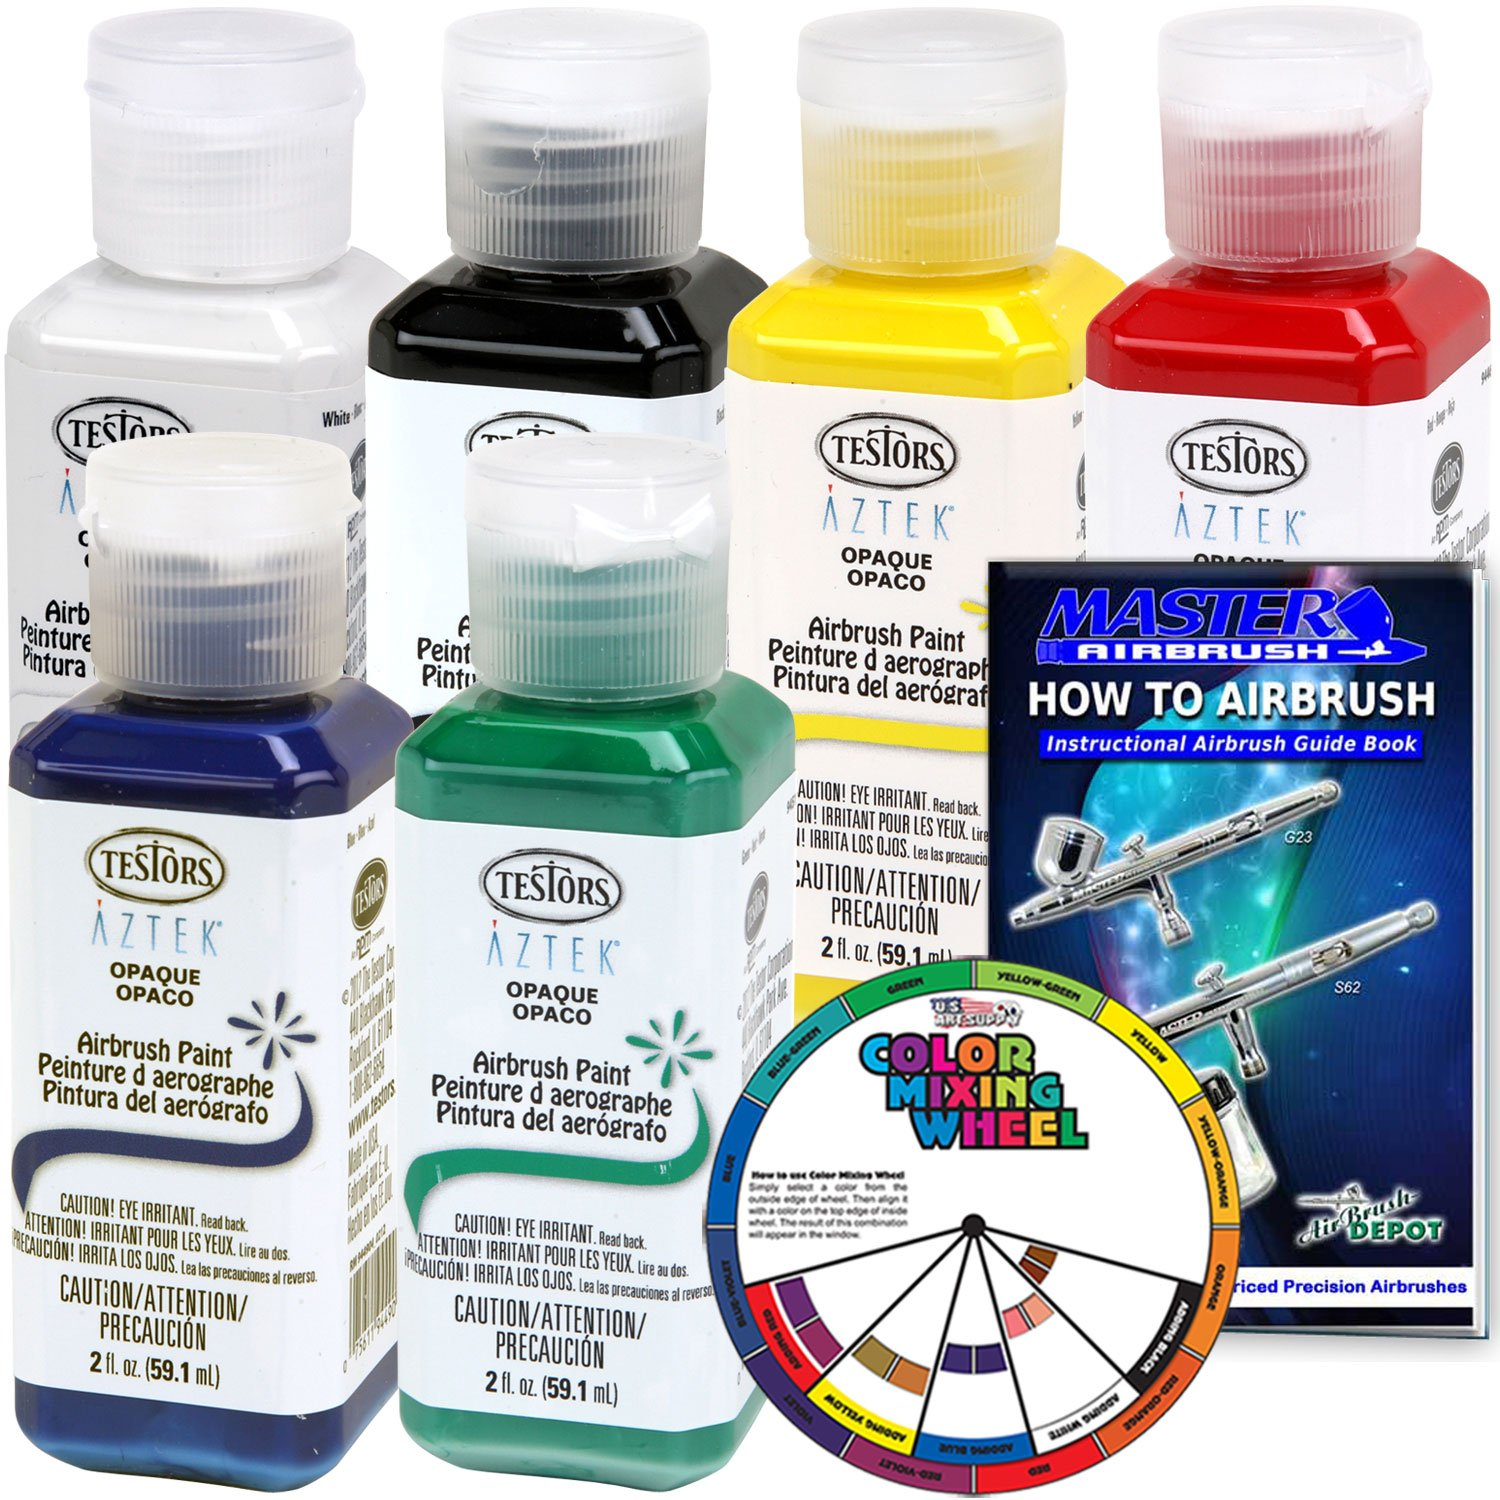 6 Color - Testors Aztek Premium Opaque Semi-Gloss Acrylic Airbrush Paint Set with Color Mixing Wheel and How to Airbrush Manual by Testors